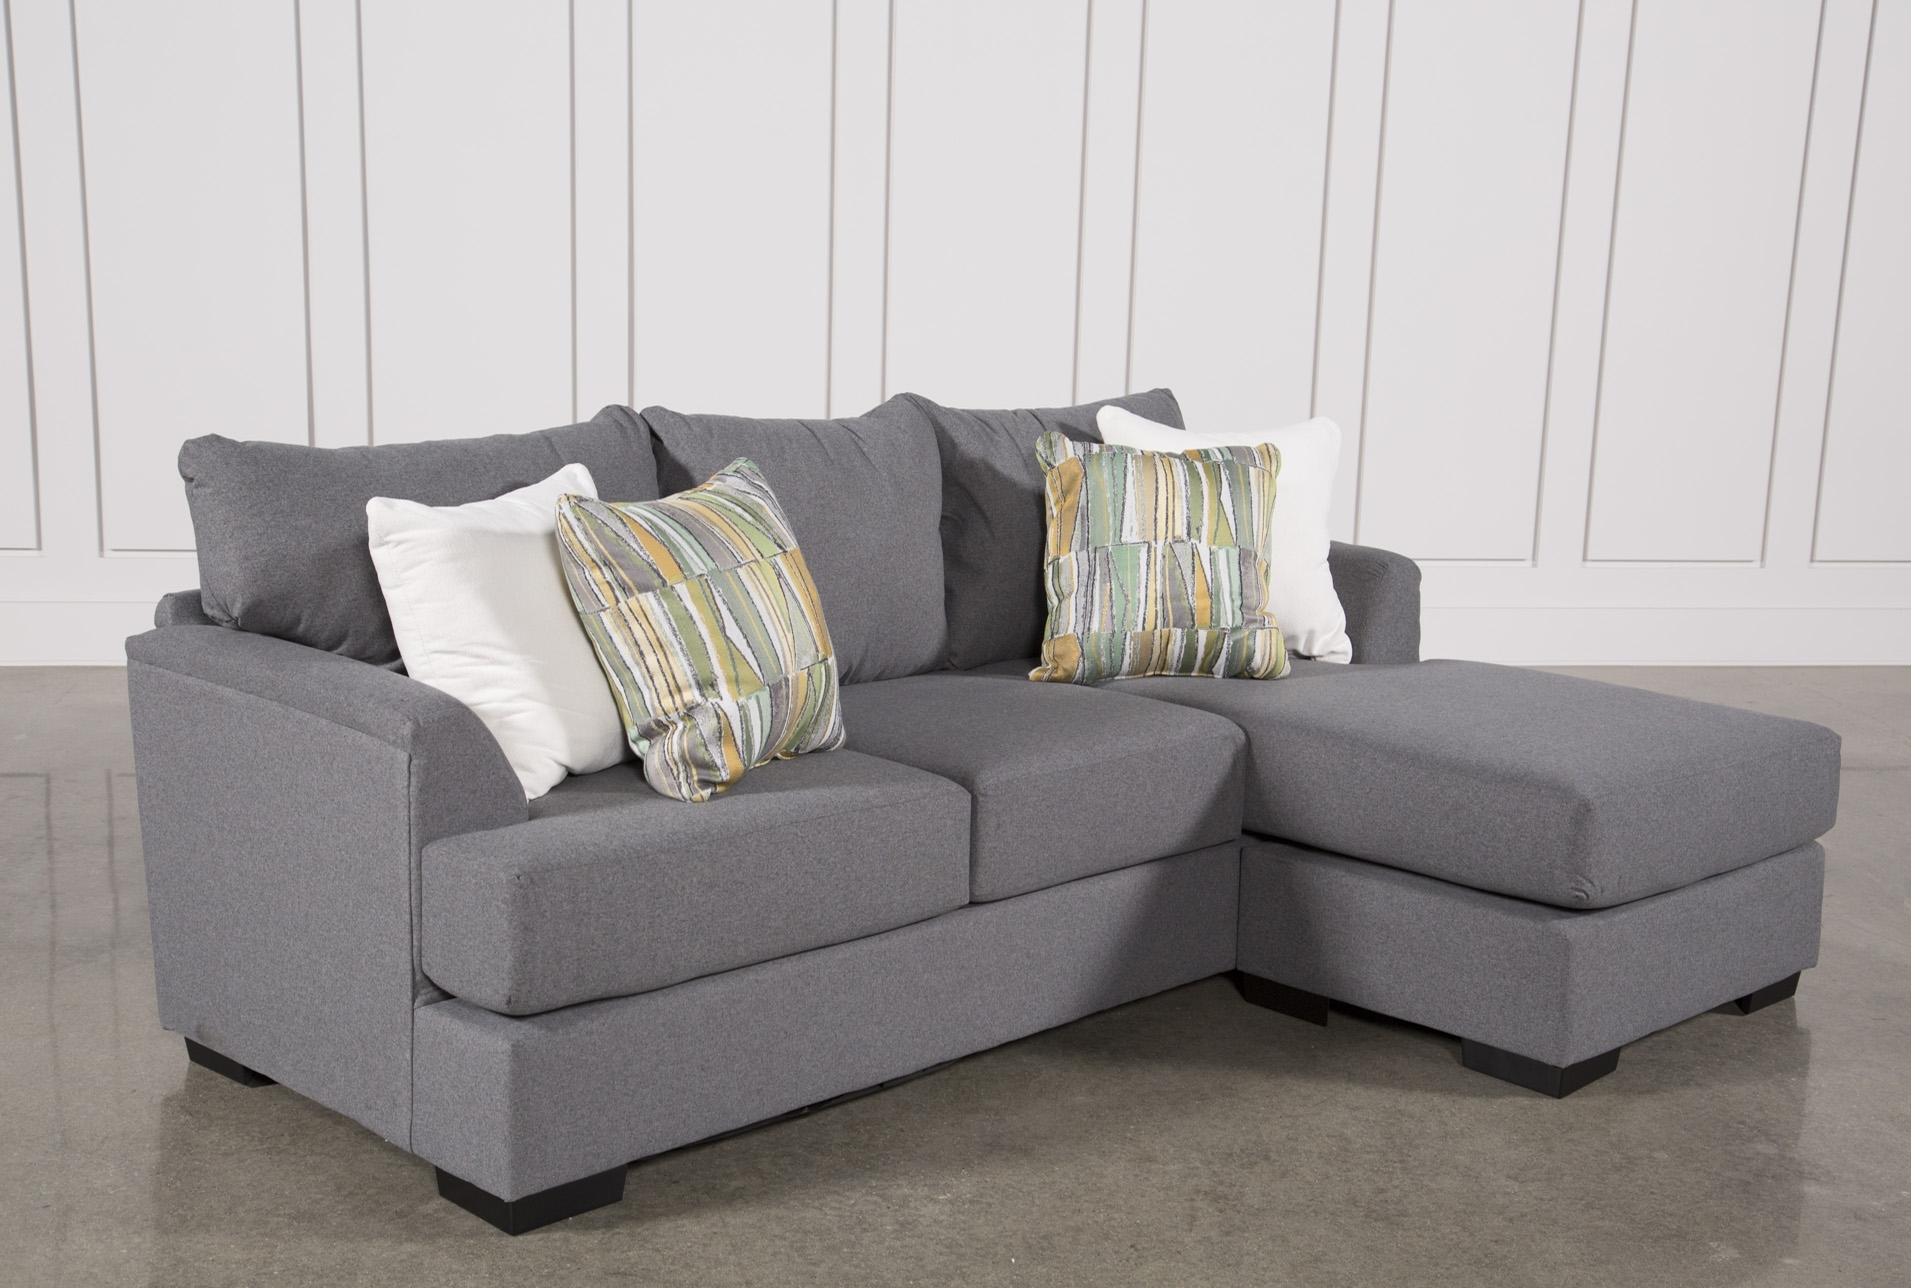 Keegan Sofa W/reversible Chaise | Products | Pinterest | Products Within Mcculla Sofa Sectionals With Reversible Chaise (Image 10 of 25)